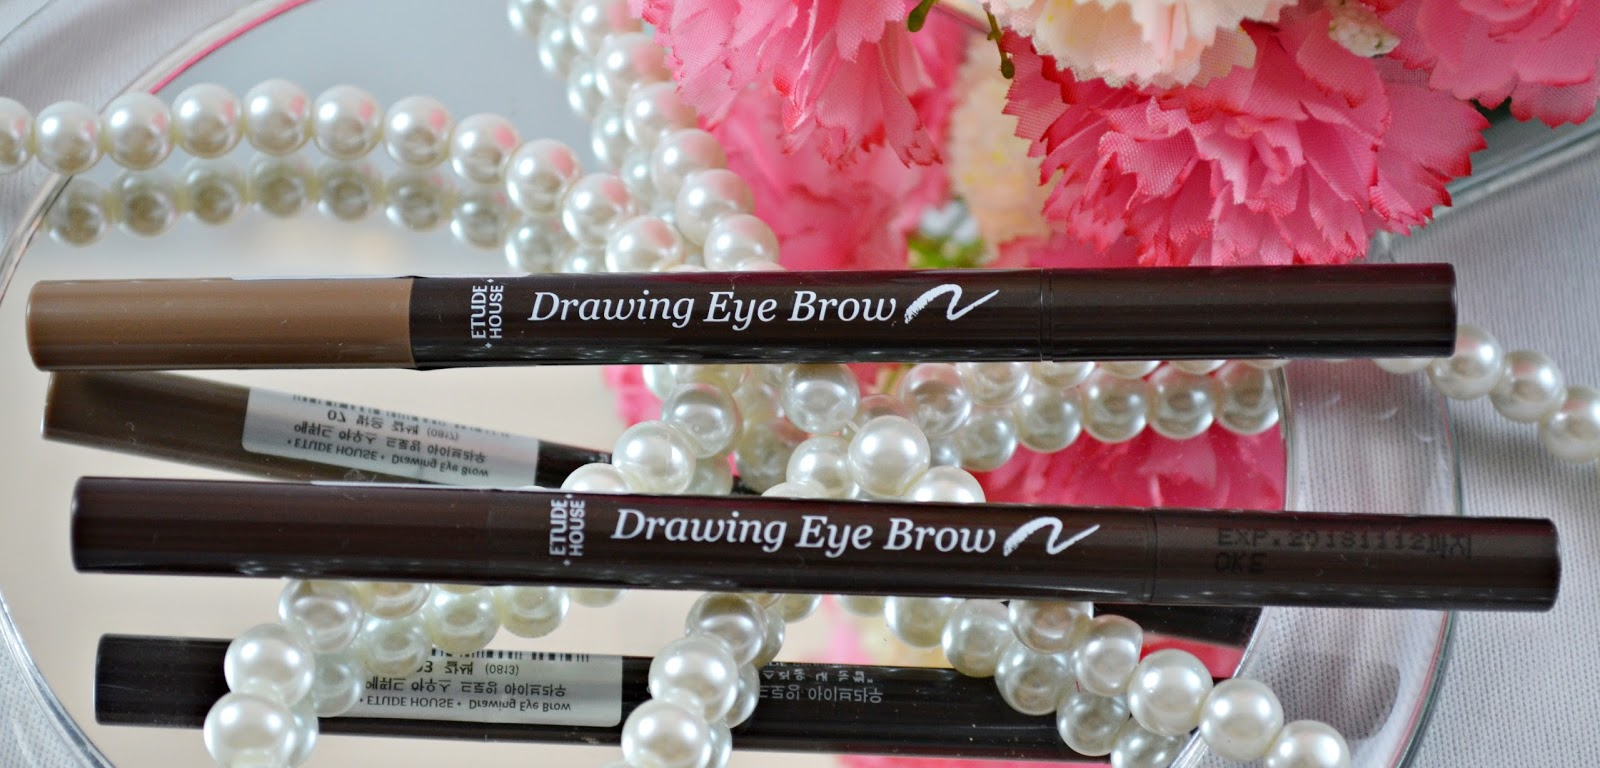 Etude Drawing Eye Brow In Shades 3 And 7 All About Beauty 101 House Eyebrow New Buy 1 Get